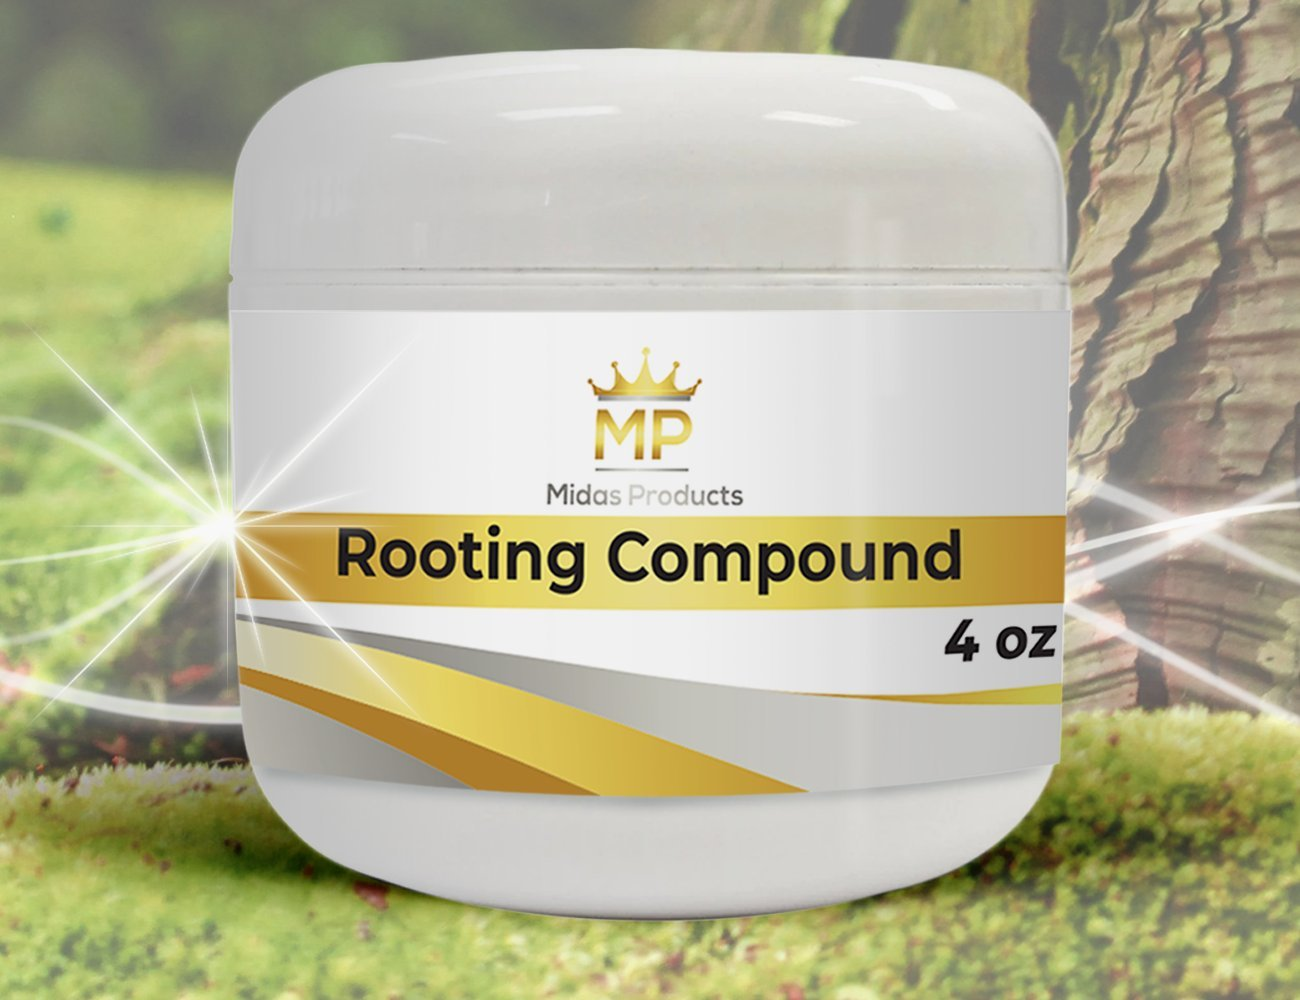 Rooting Gel – IBA Rooting Hormone- Ideal Cloning Gel for Strong Clones - The Key to Plant cloning - Midas Products Rooting Gel Hormone for cuttings 4oz - for Professional and Home Based Growers by Midas Products (Image #3)